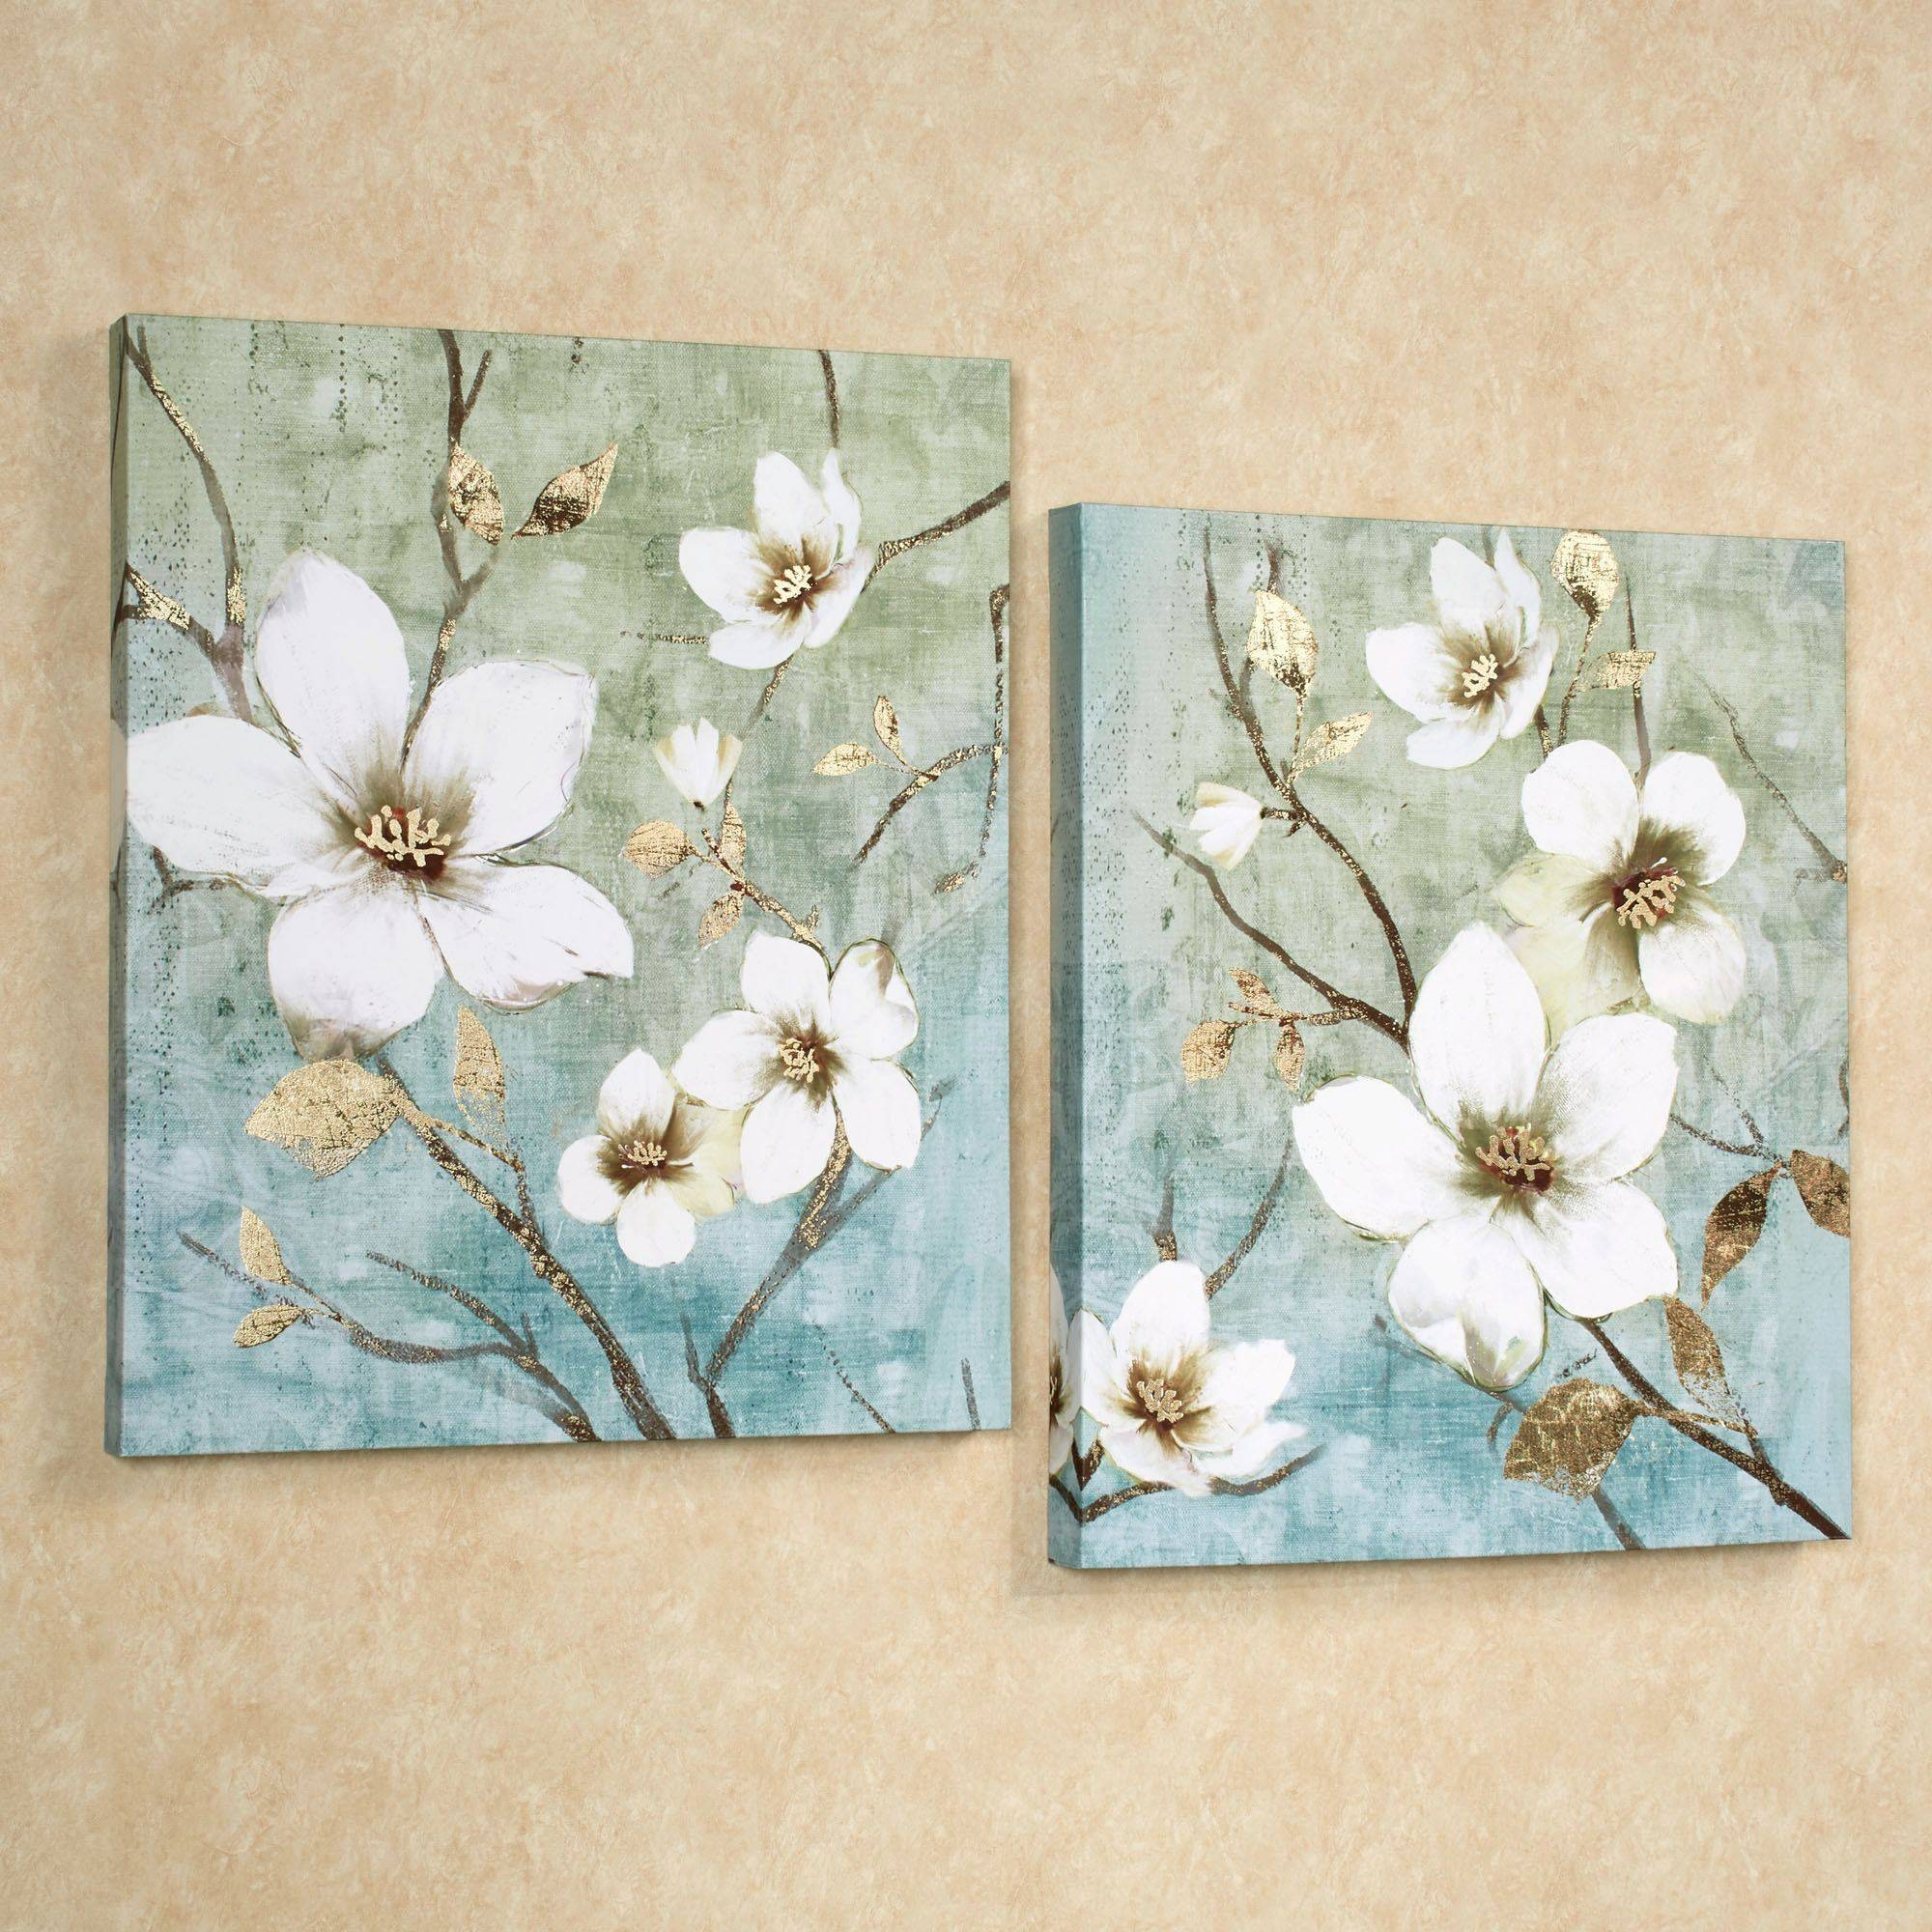 In Bloom Floral Canvas Wall Art Set Pertaining To Newest Floral Wall Art Canvas (Gallery 3 of 20)